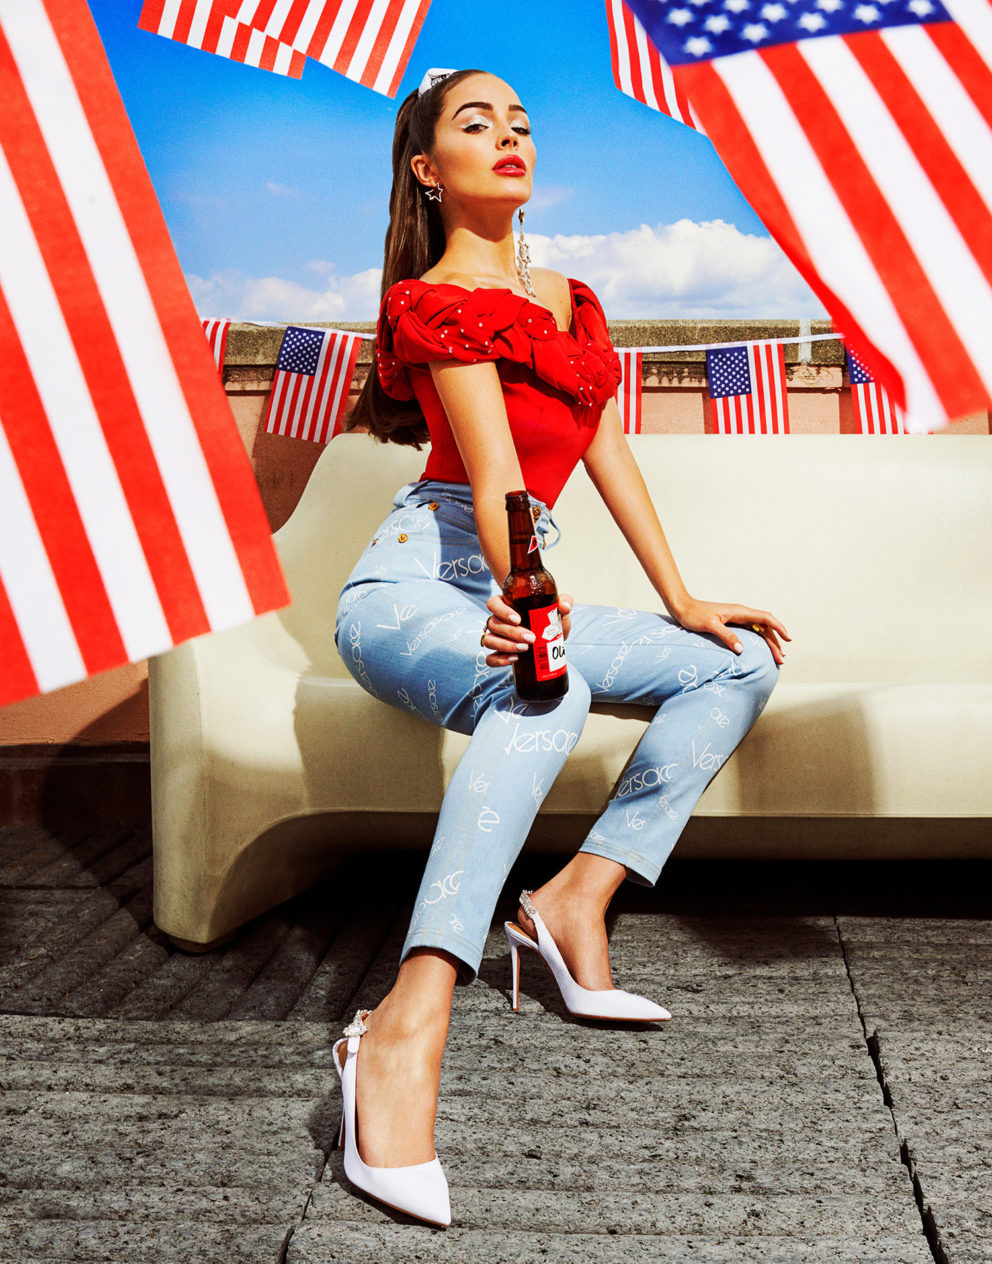 180615 Sbjct Olivia Culpo By Christian Hogstedt 01